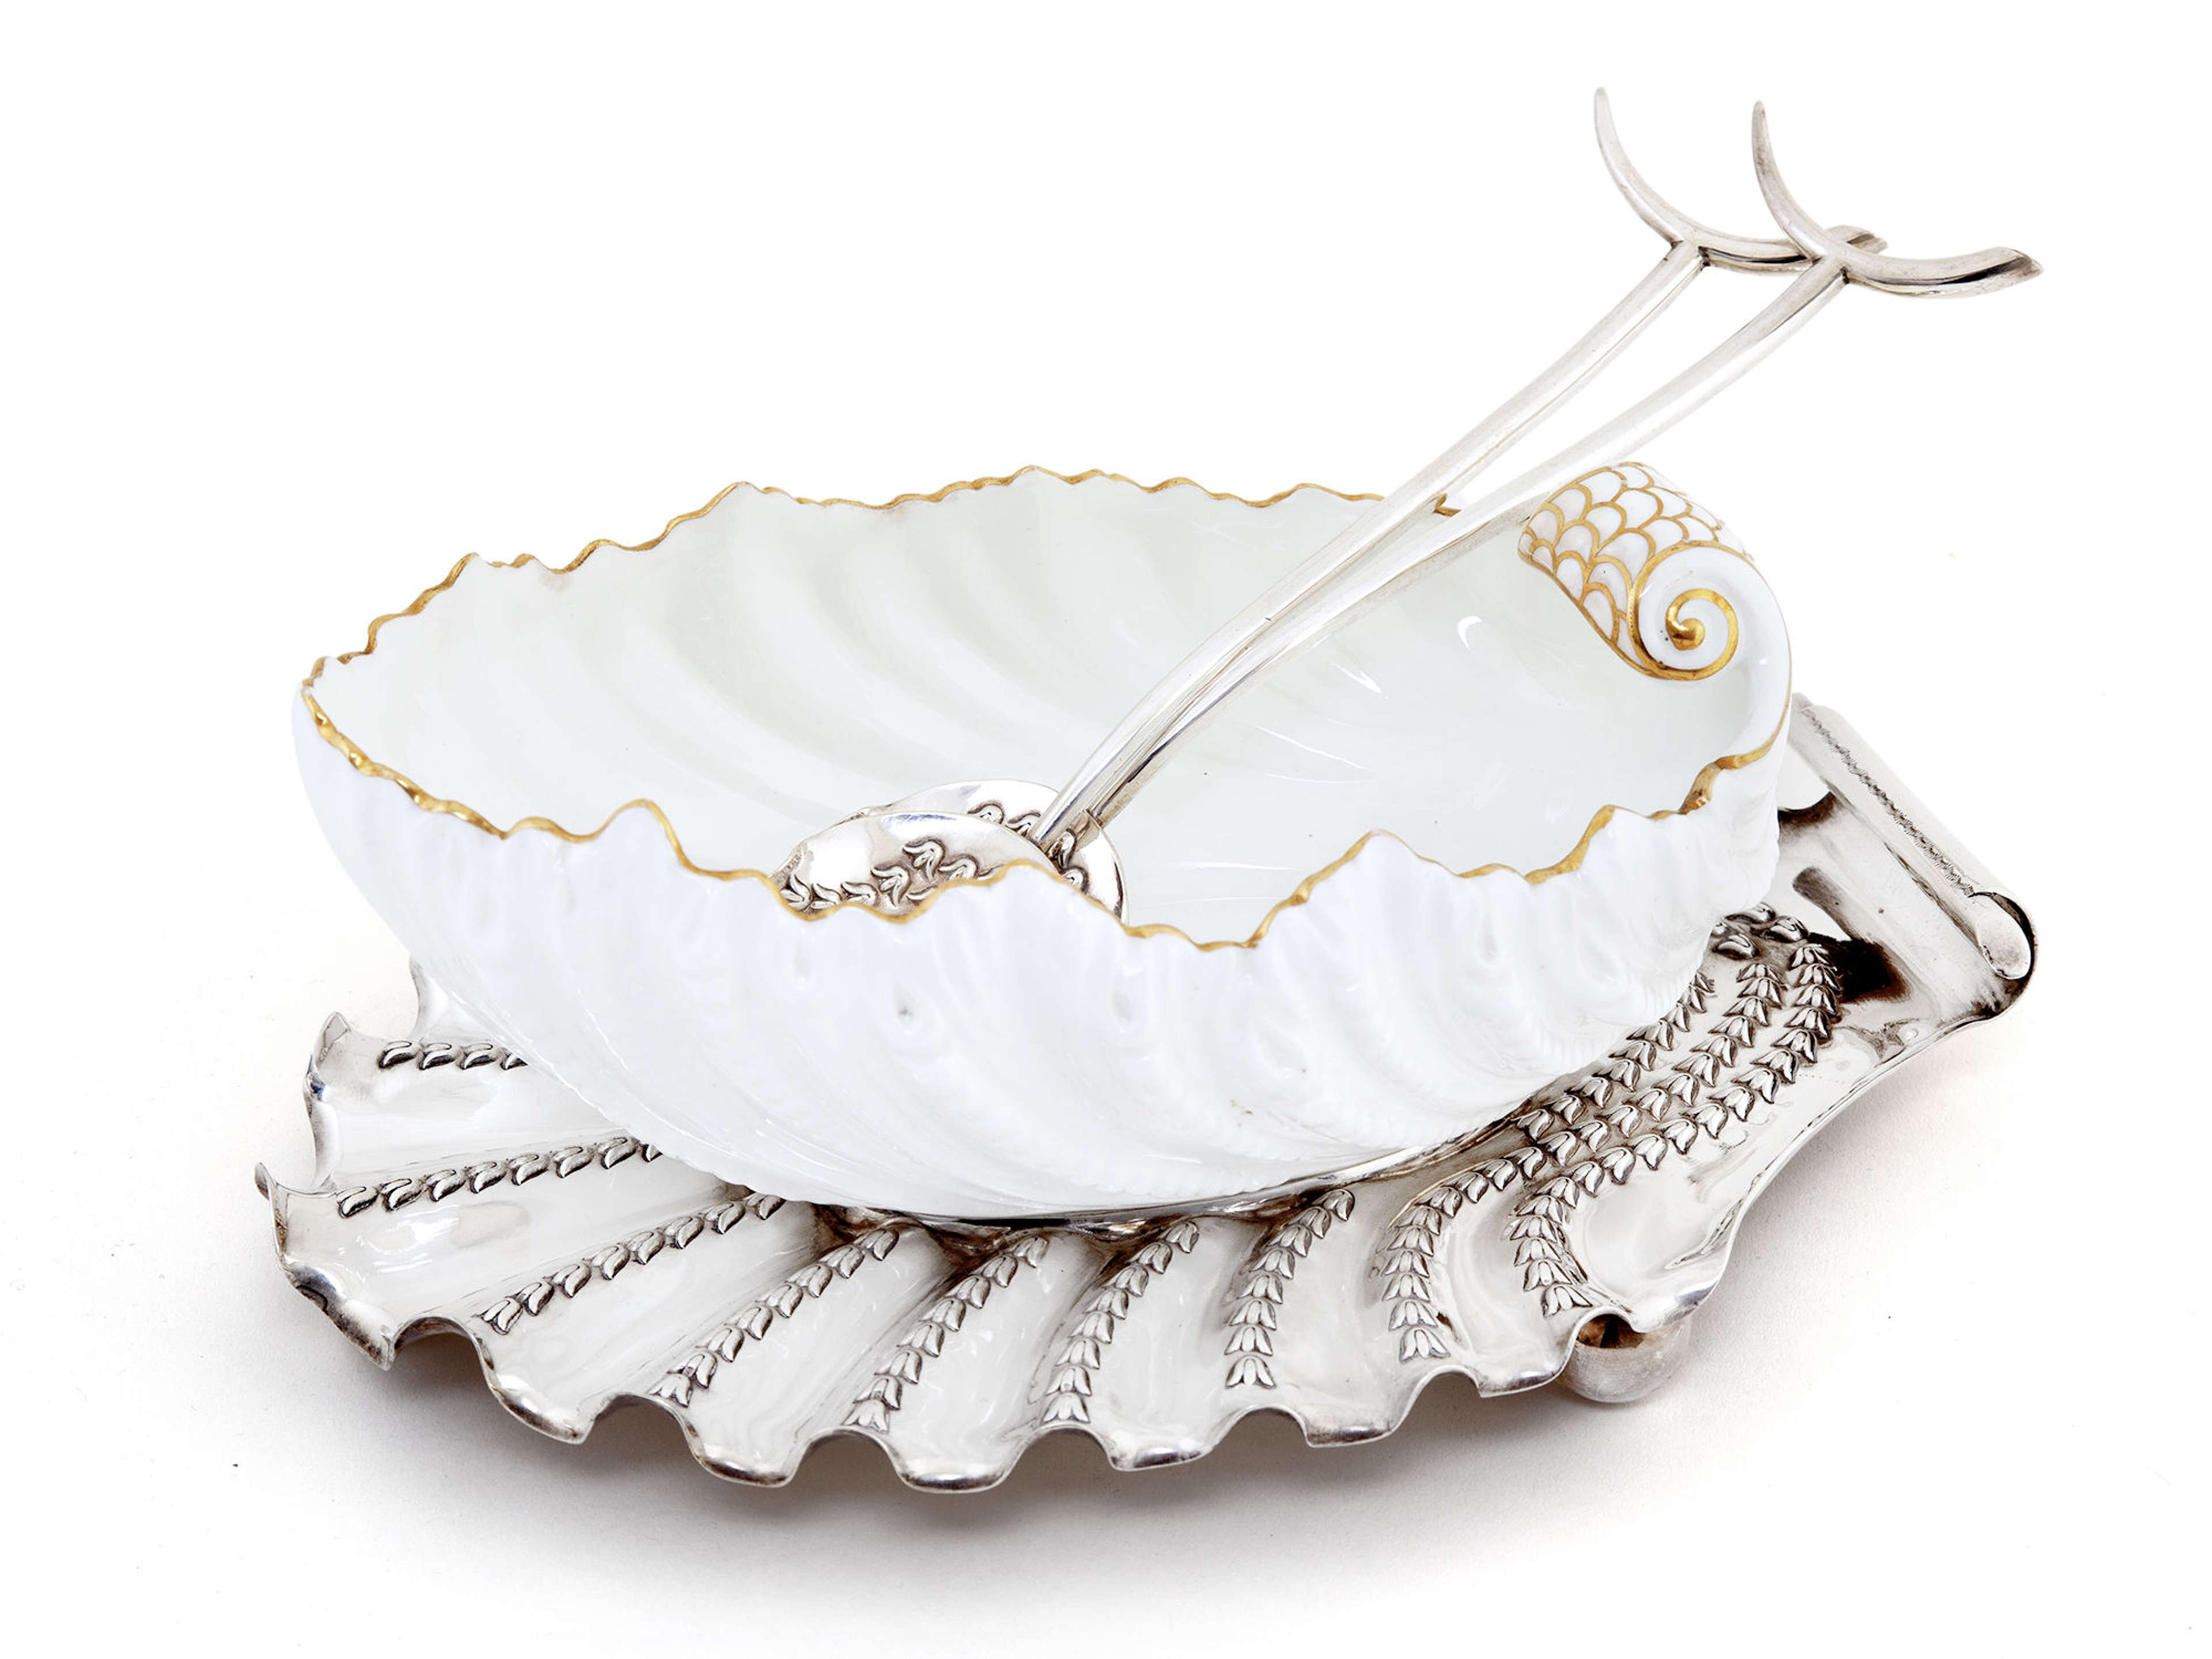 Coalport Serving Dish on Silver Plate Stand with Original Servers